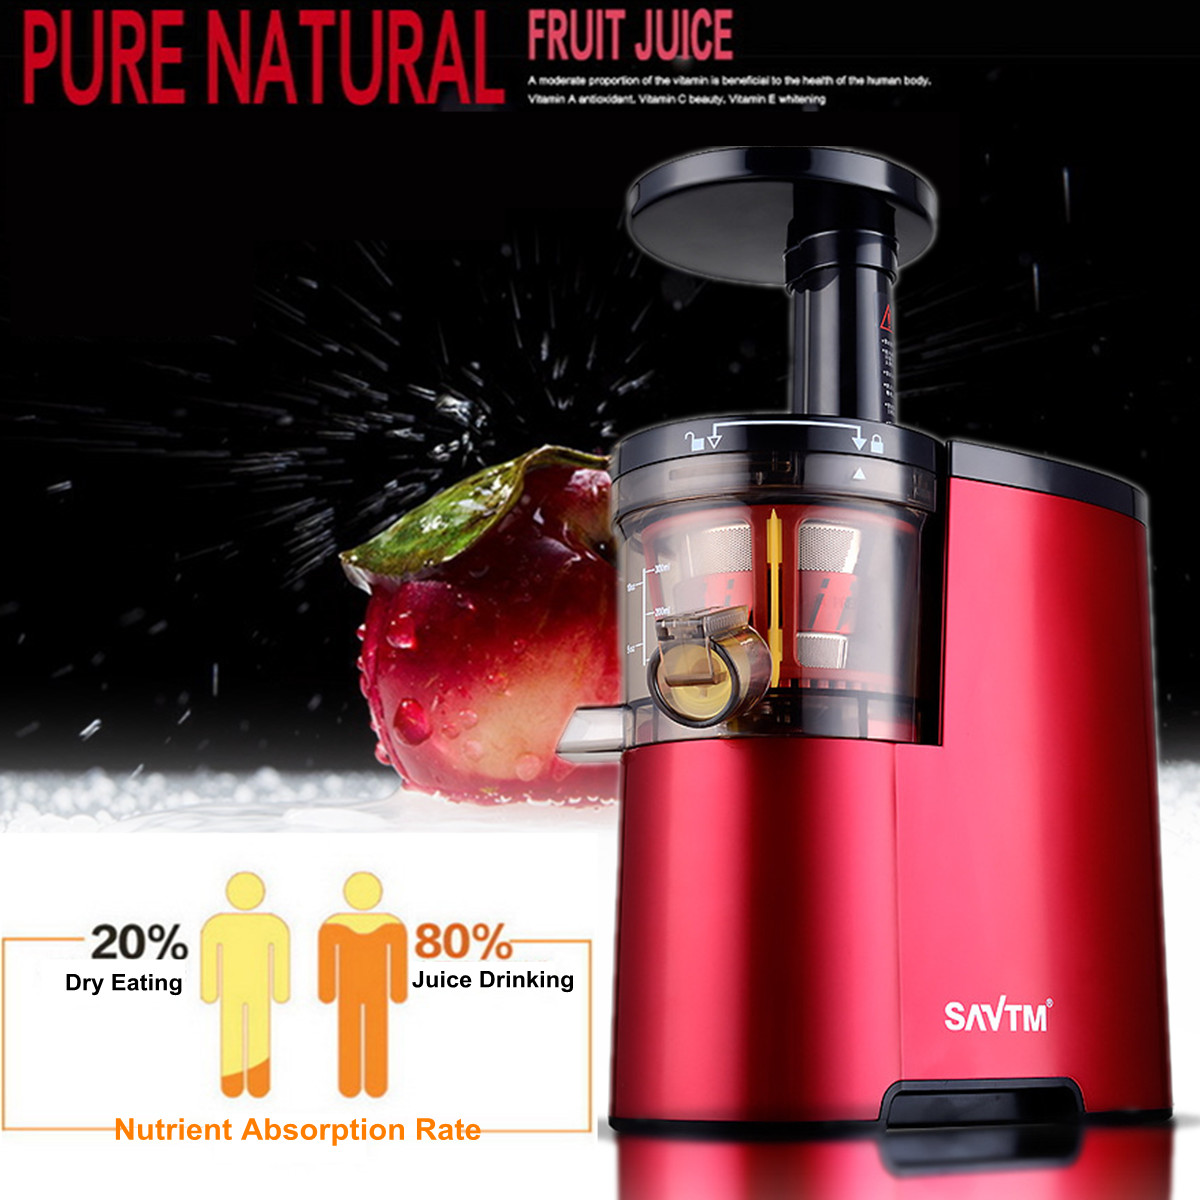 Red Squeezing 220V Electric Slow Juicer Fruits Vegetables Low Speed Juice Maker Extractor 150W Self-cleaning Ultra-quiet цена 2017